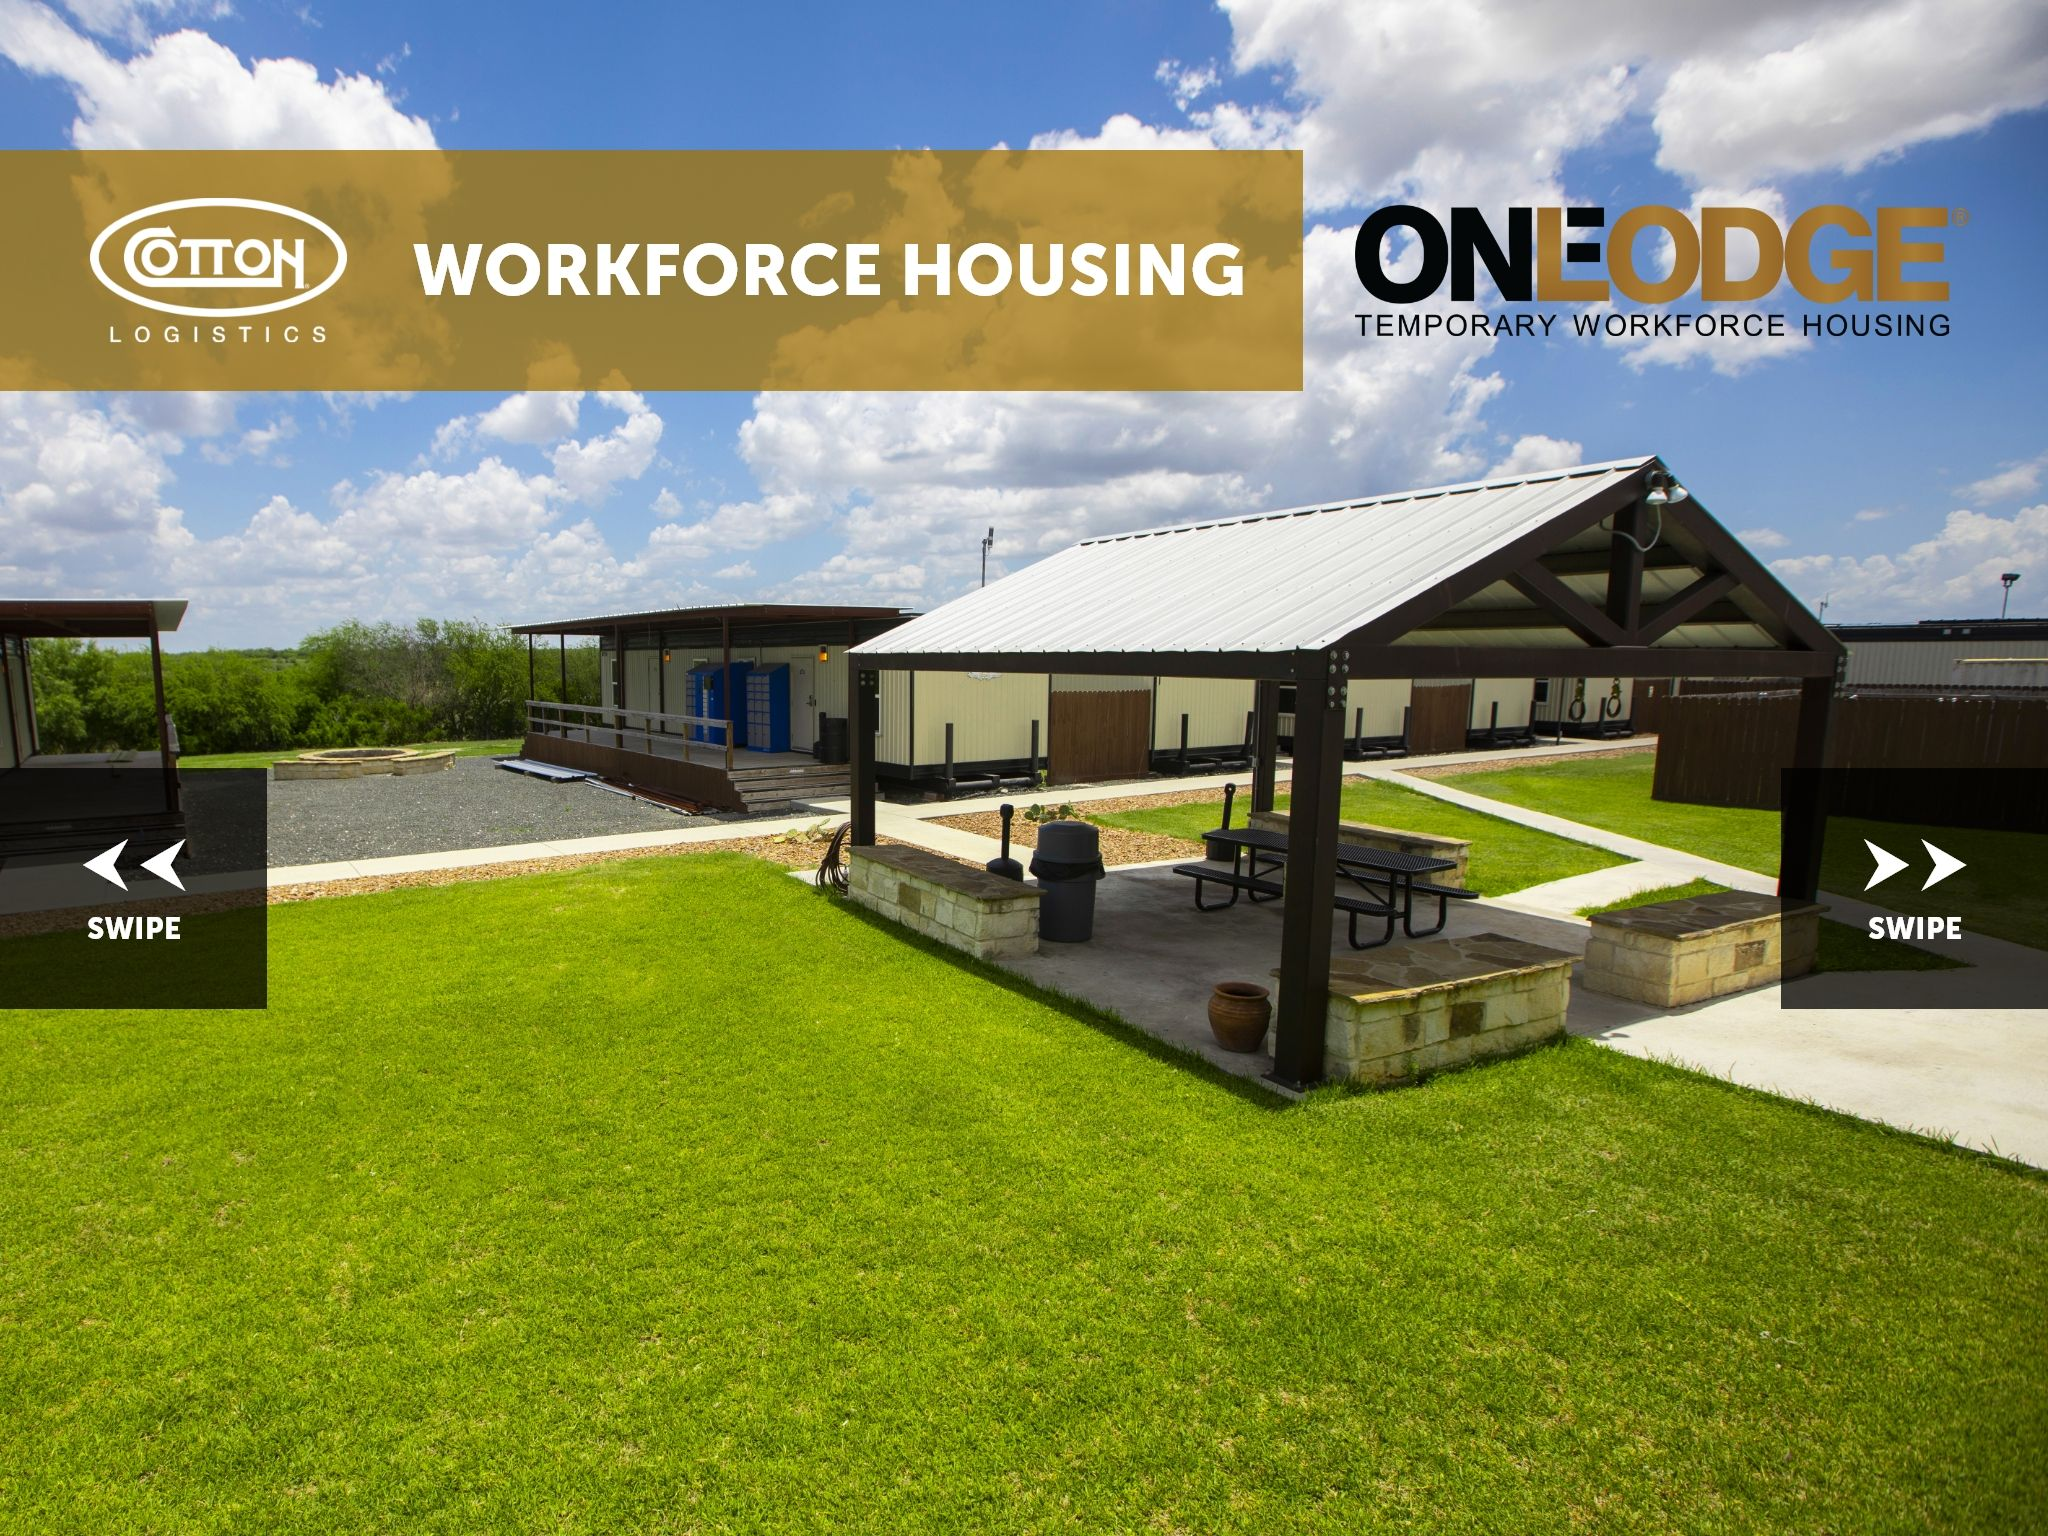 Logistics -  Workforce Housing.jpg